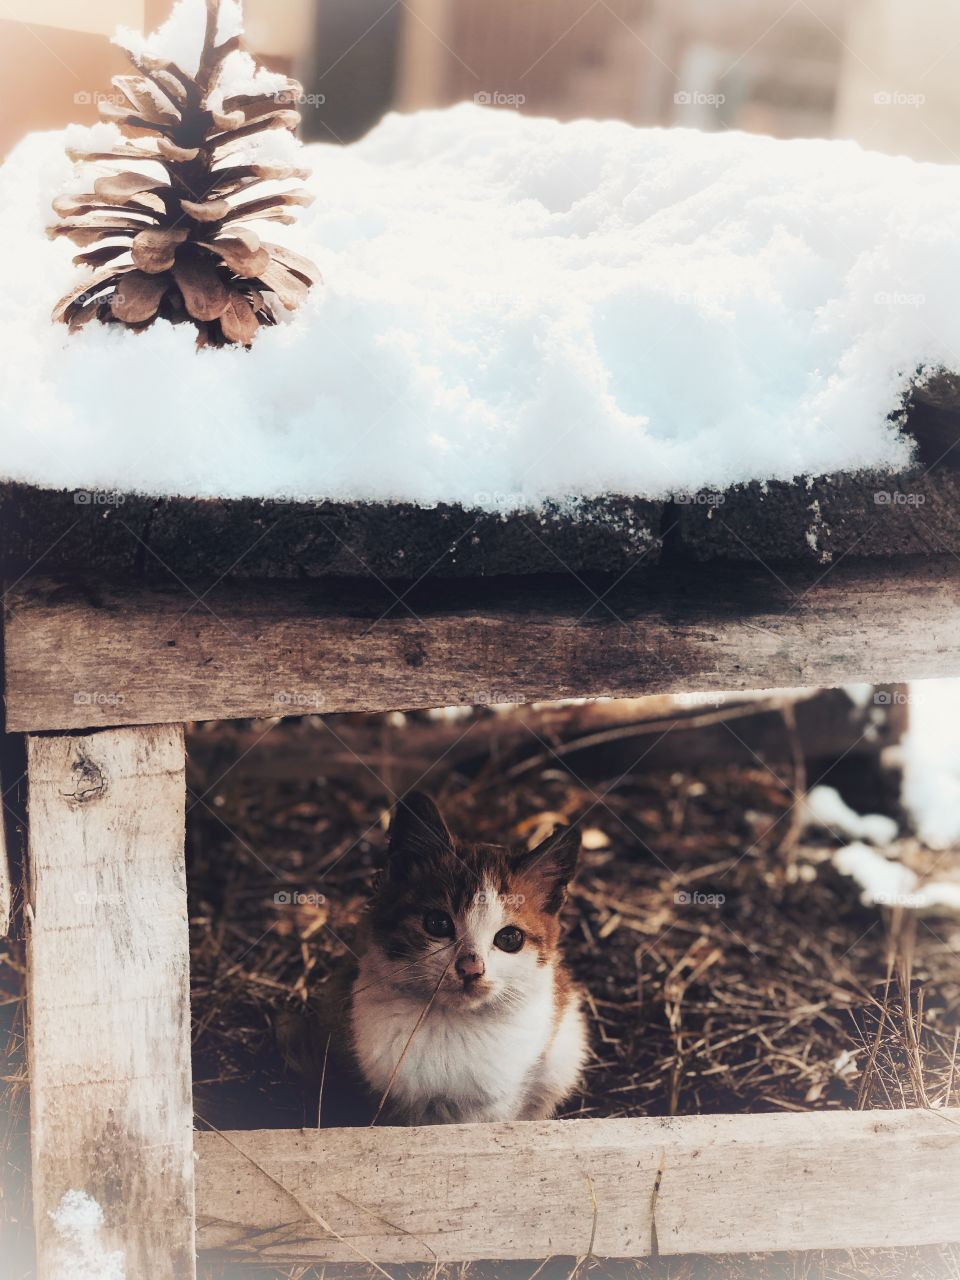 snow and kitty